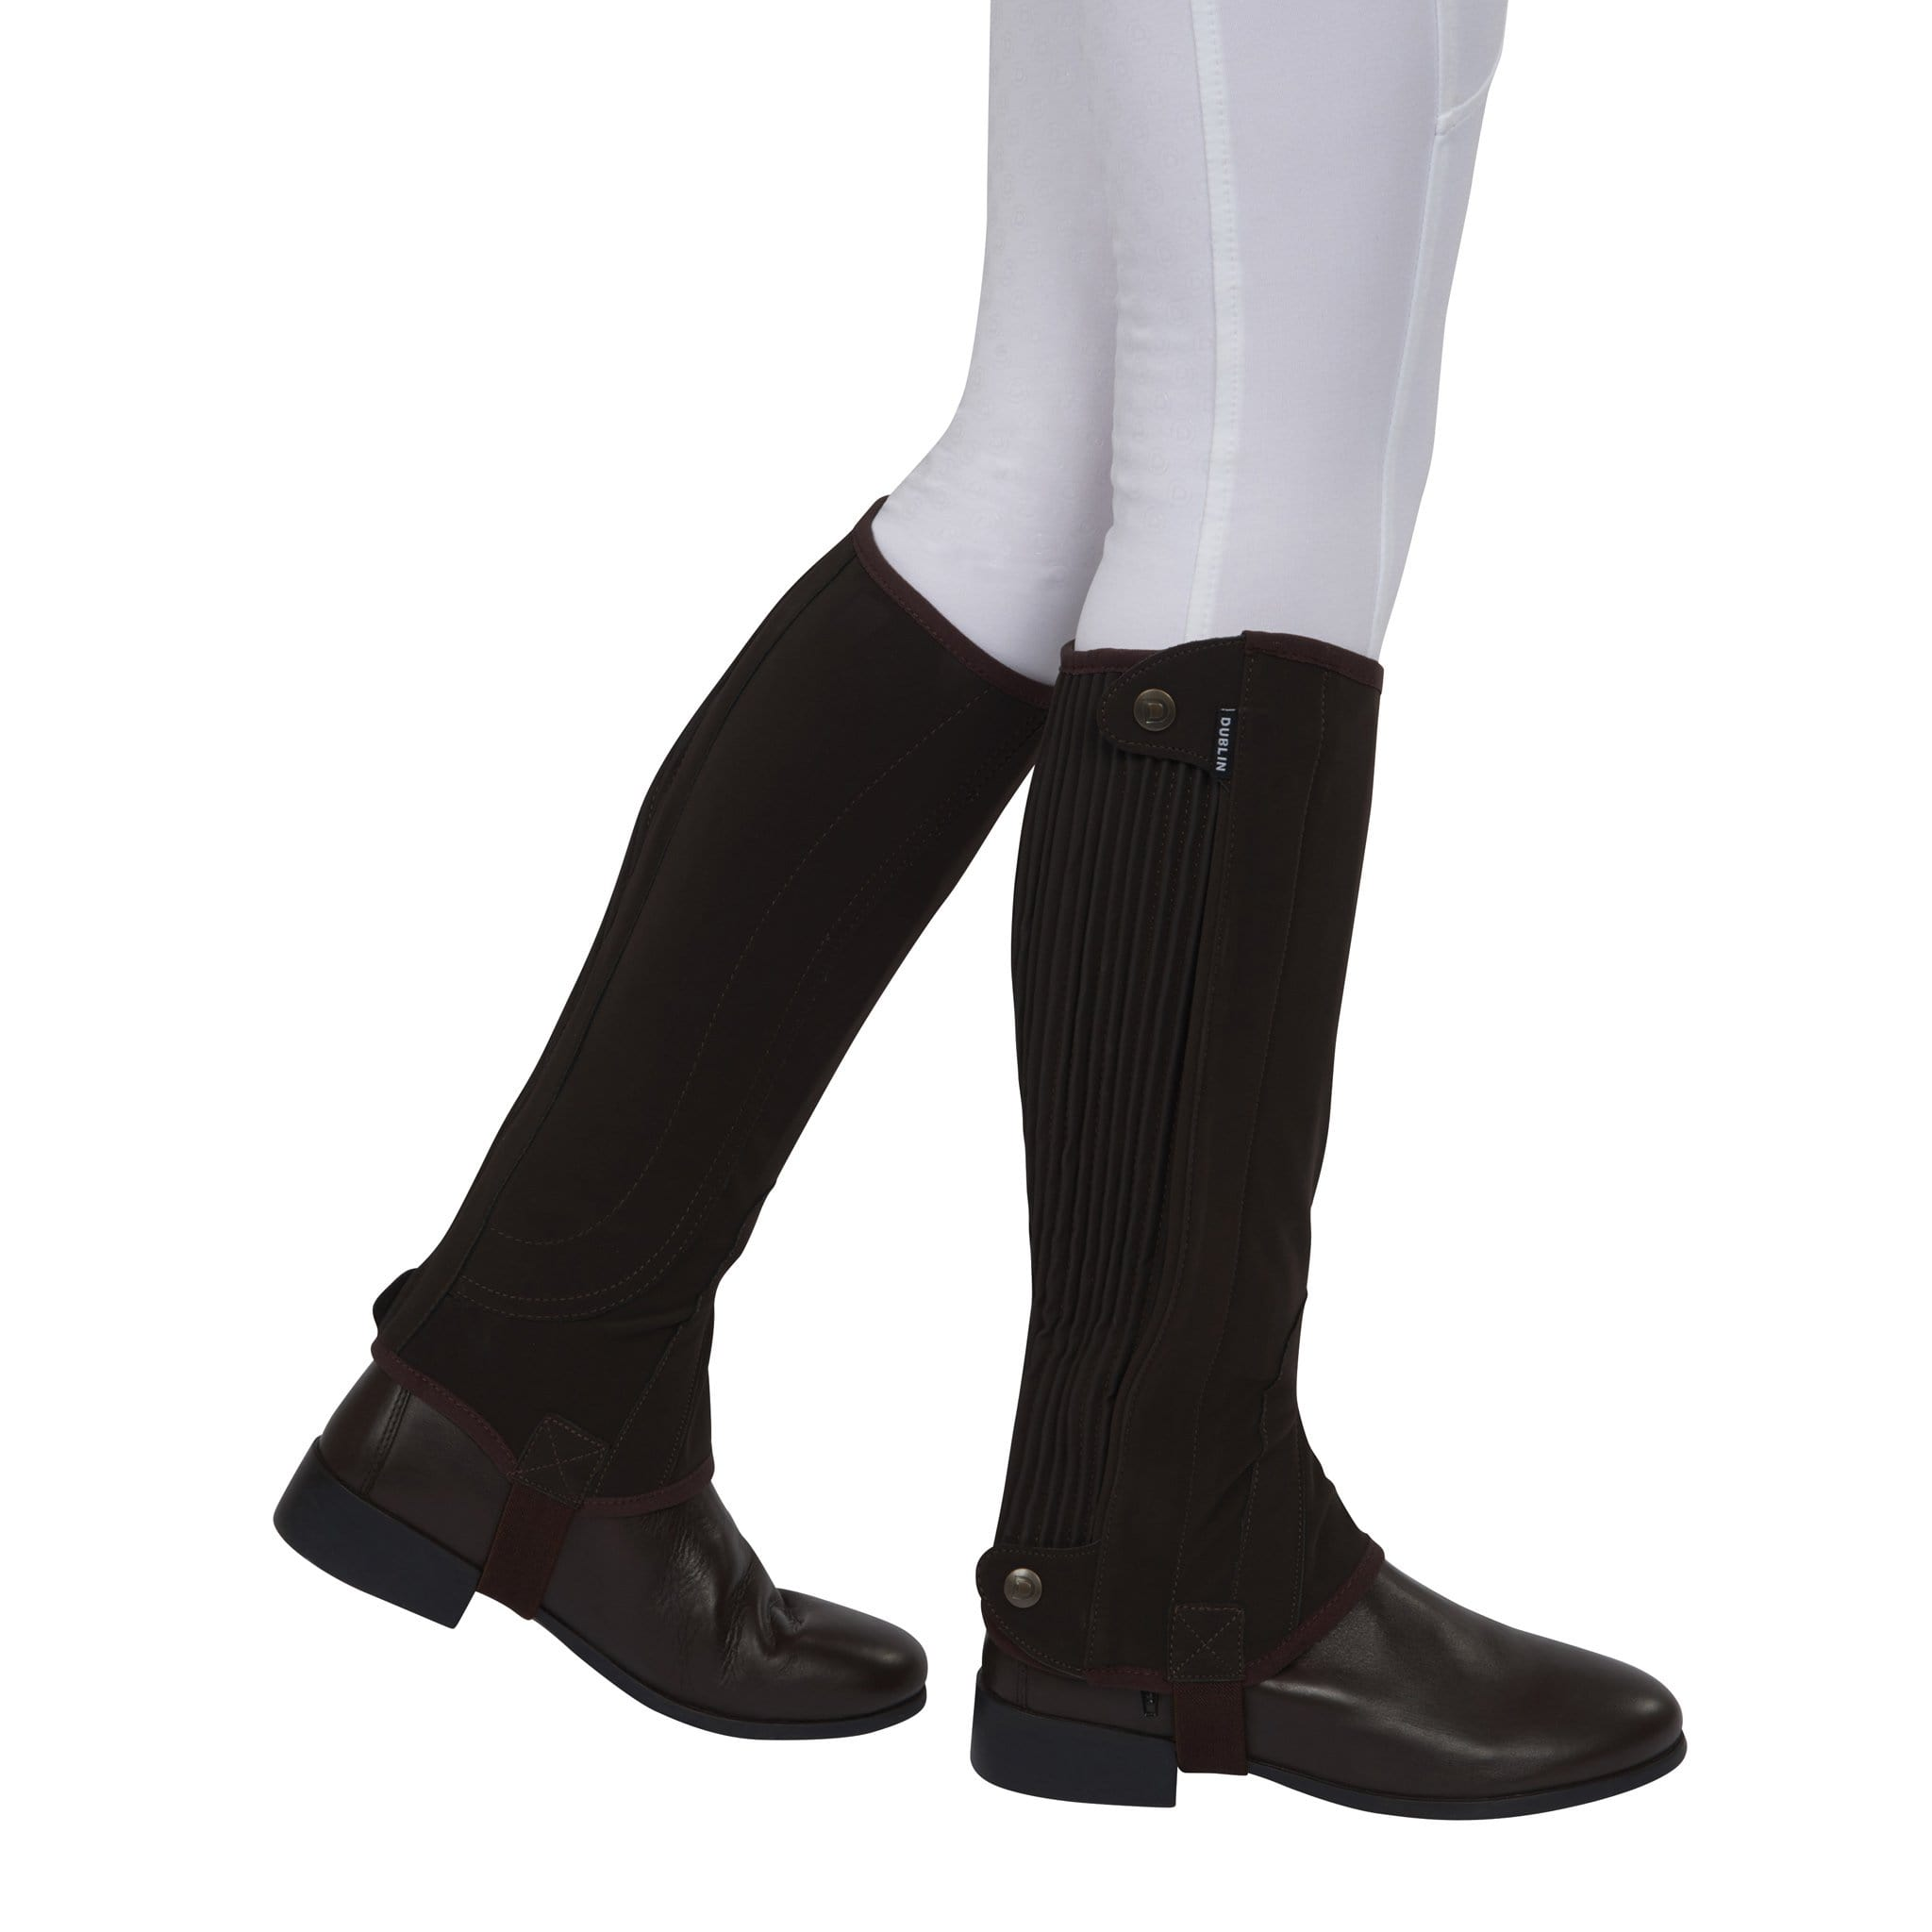 Dublin Children's Easy-Care Premier Half Chaps 807322 Brown